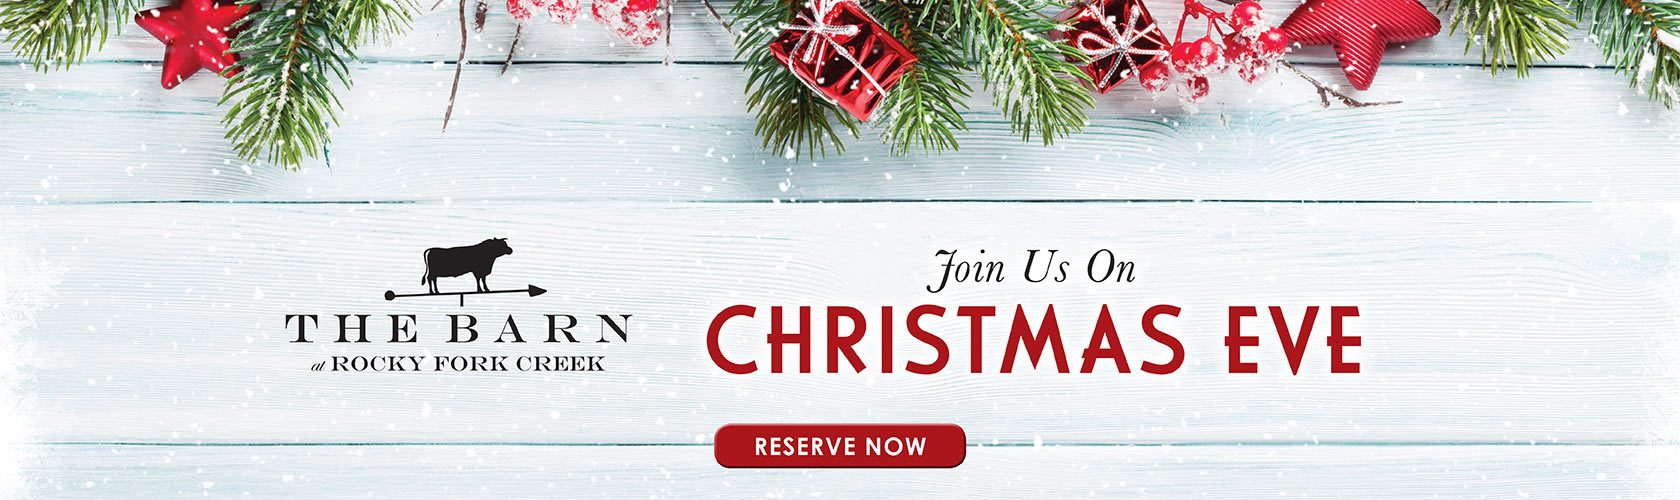 The Barn at Rocky Fork Creek. Join us on Christmas Eve. Reserve Now.